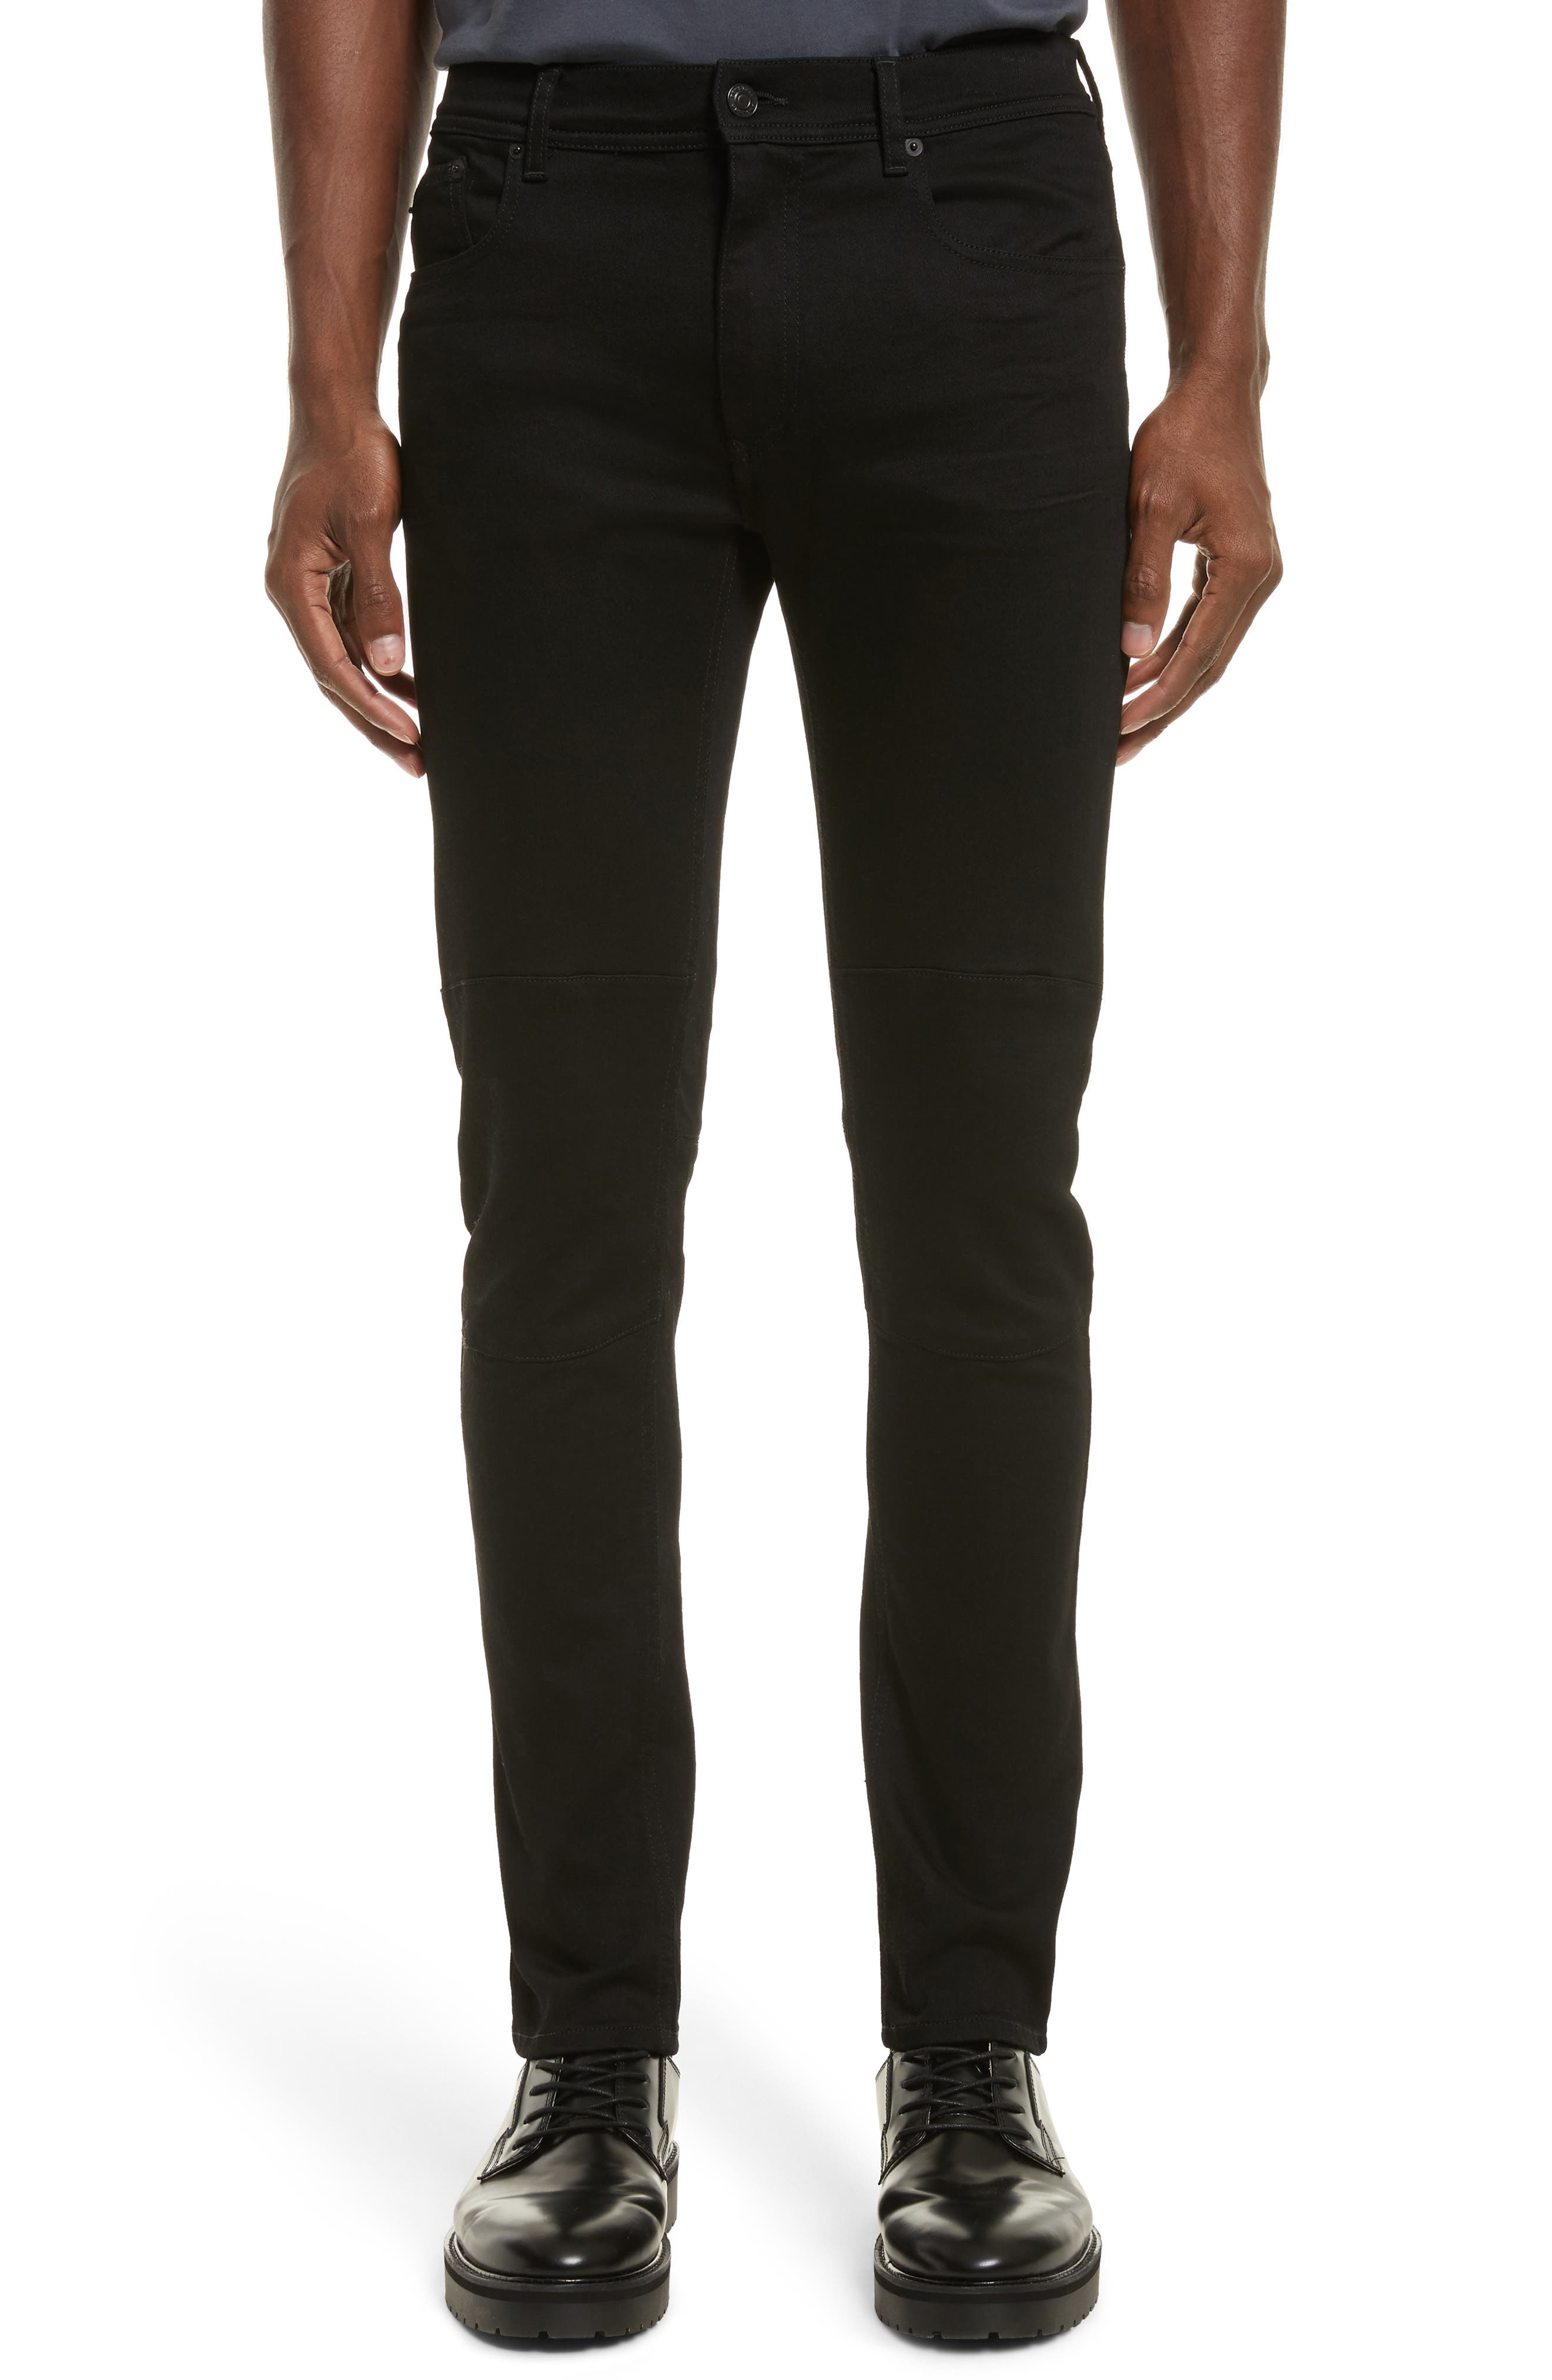 Tattenhall Slim Fit Jeans,                         Main,                         color, Rinse Black